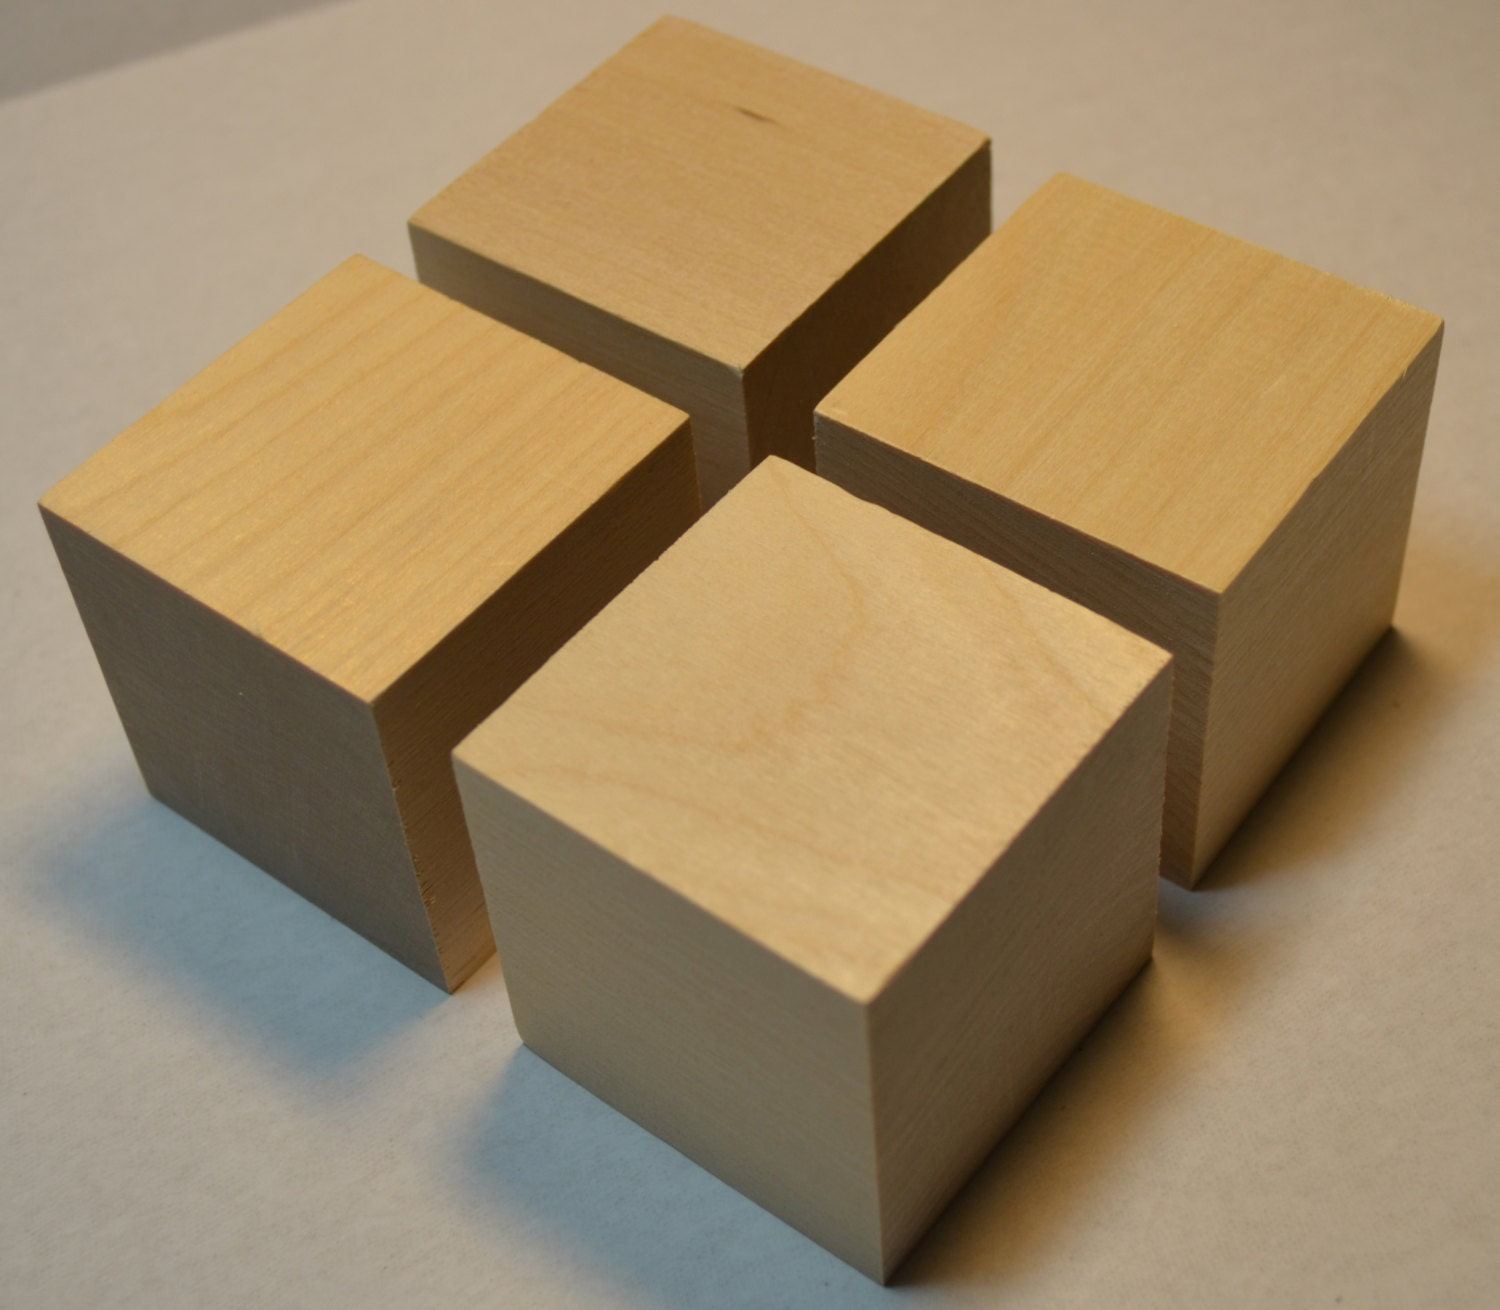 2 solid wood blocks set of 4 unfinished wooden for Where to buy wood blocks for crafts